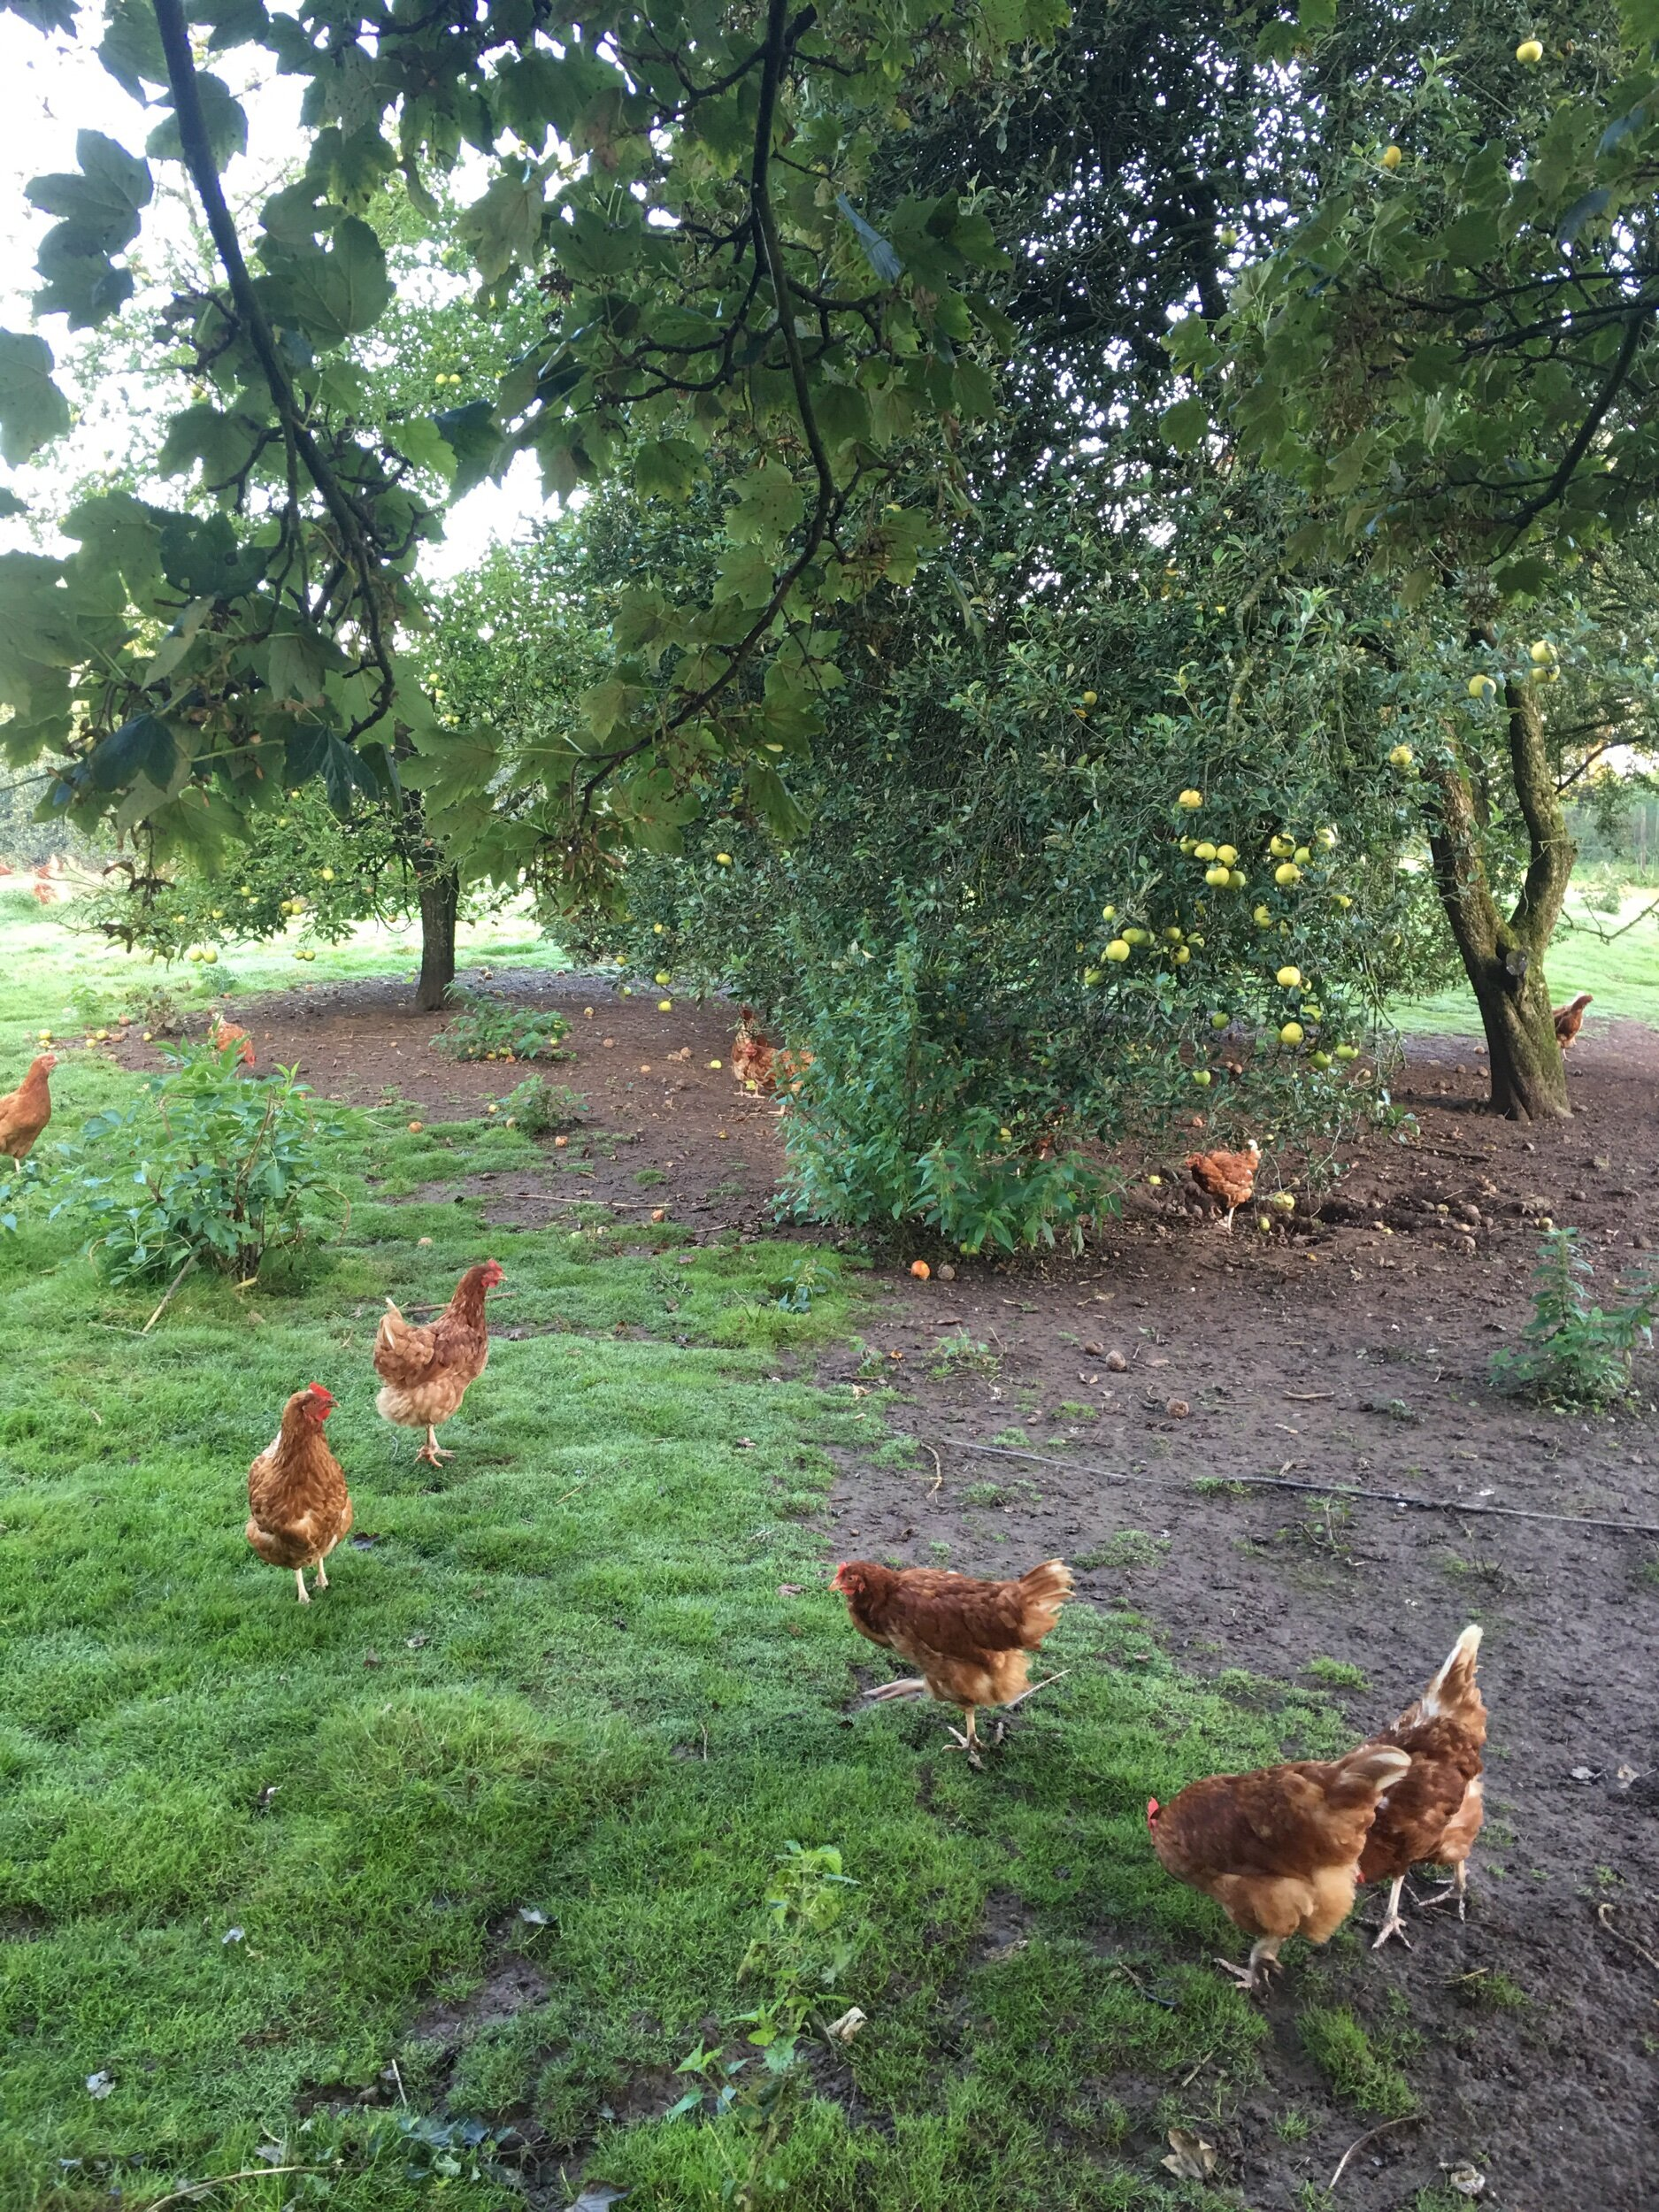 Our free range hens in the orchard eating fallen apples, pears and damsons. All their eggs are sold daily in the shop together with the fruit harvested from the trees. None of the fruit has been sprayed with insecticides, hence there maybe slight blemishes, but the price is up to half the price of the major six supermarkets.